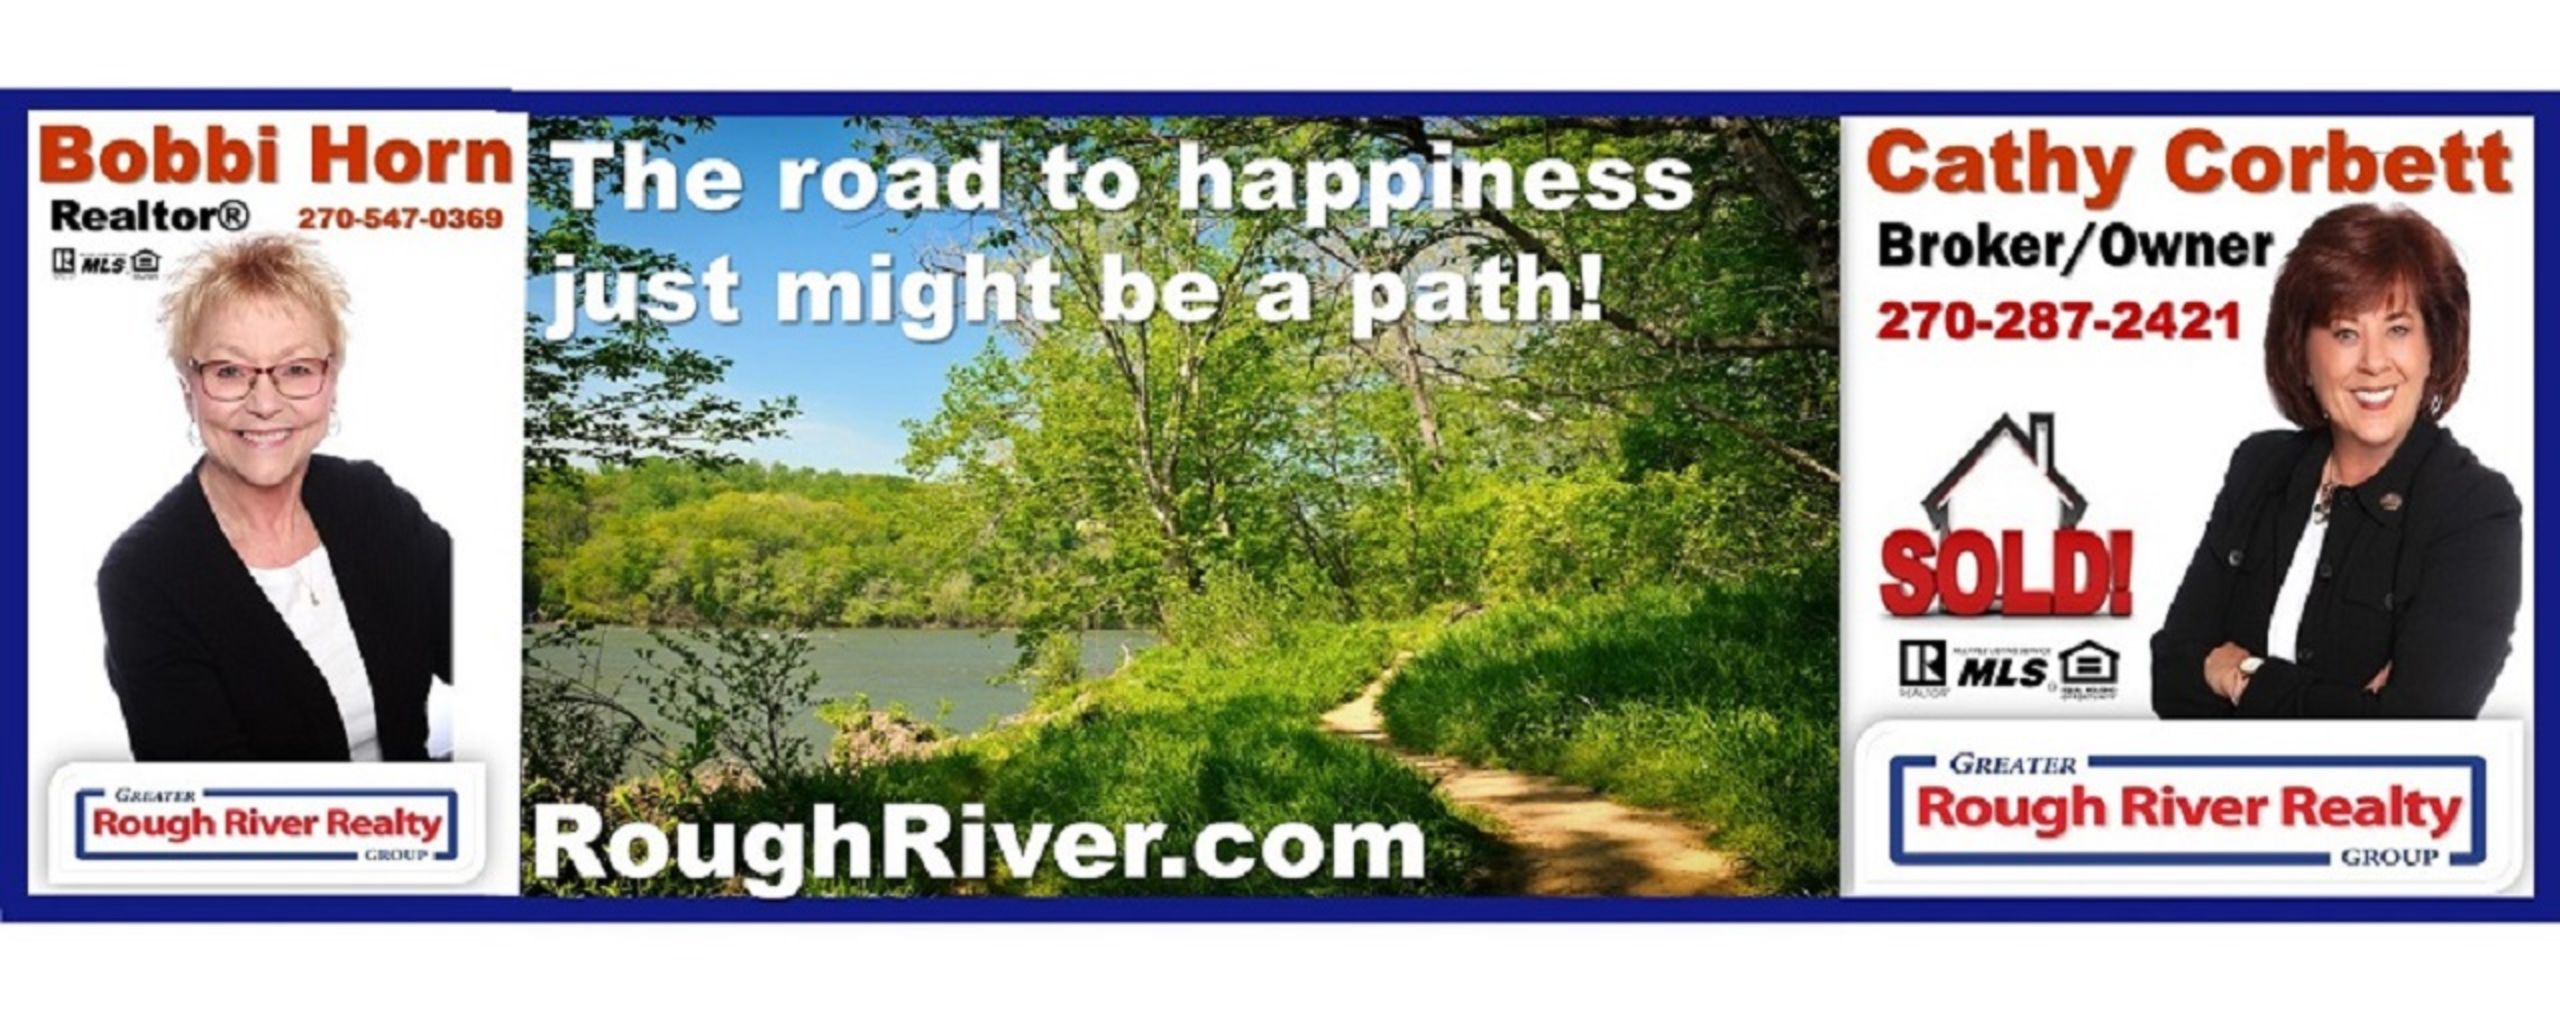 Your road to happiness is a lake path!